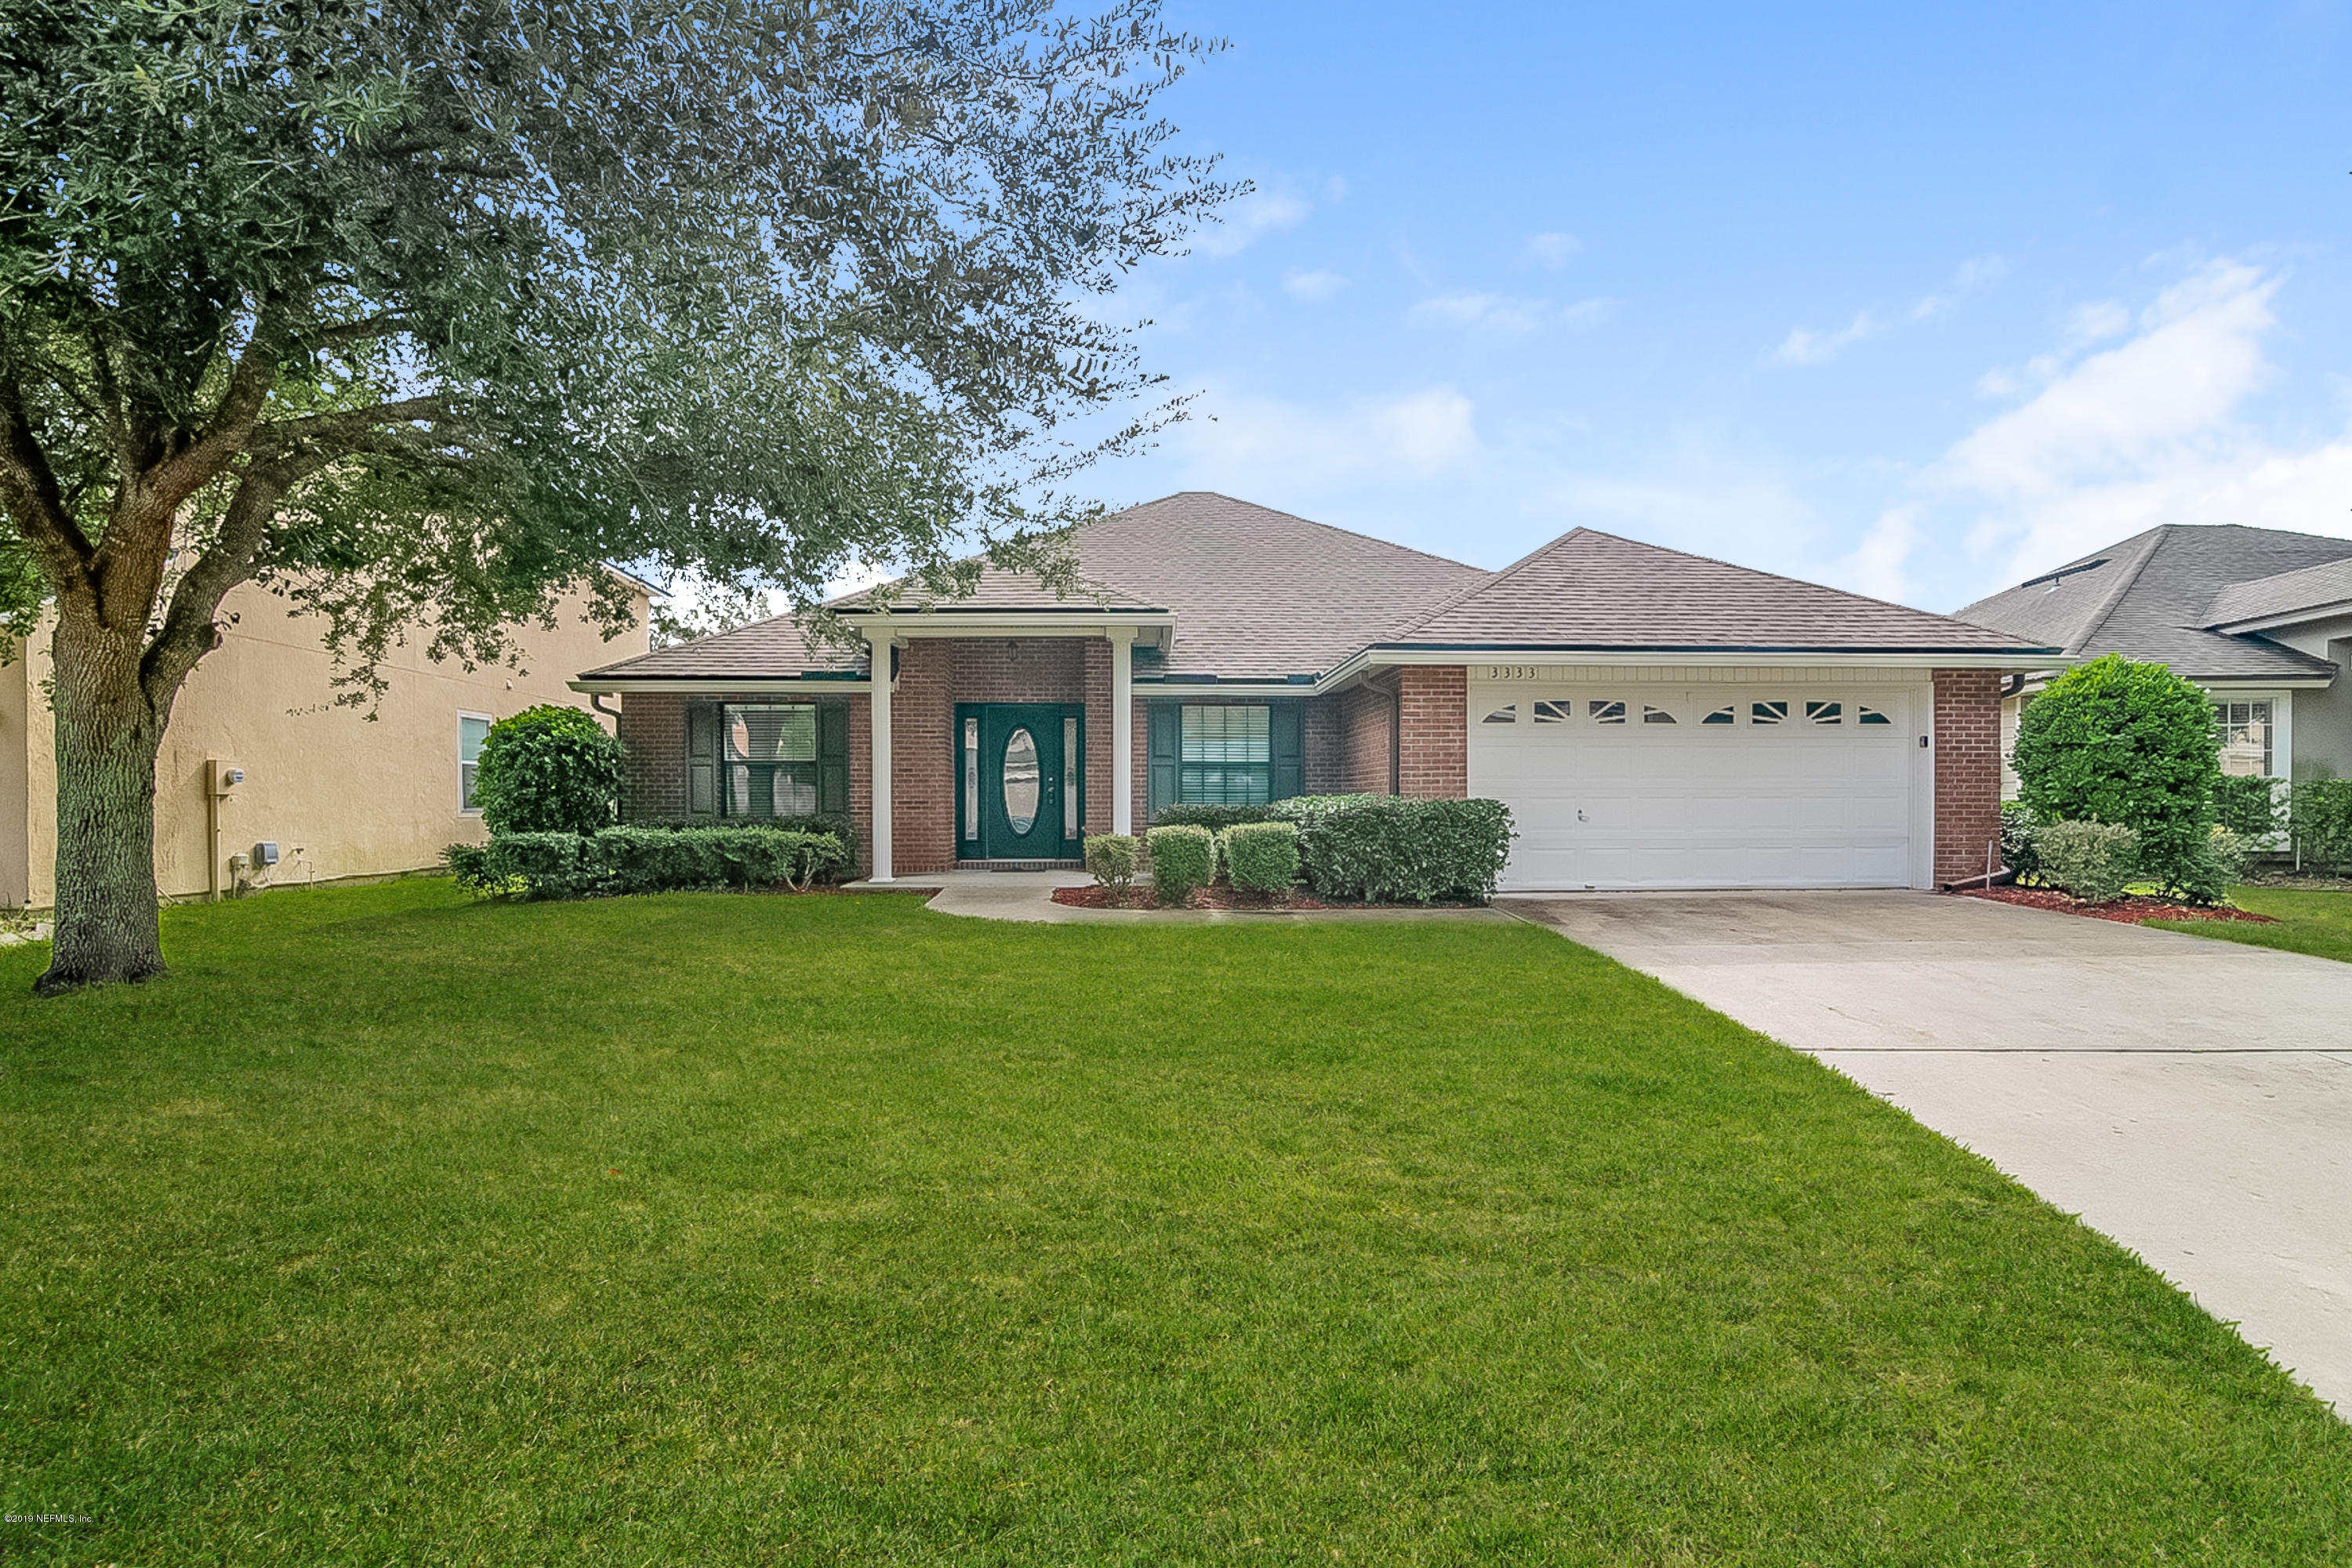 3333 HORSESHOE TRAIL, ORANGE PARK, FLORIDA 32065, 4 Bedrooms Bedrooms, ,2 BathroomsBathrooms,Rental,For sale,HORSESHOE TRAIL,1021442